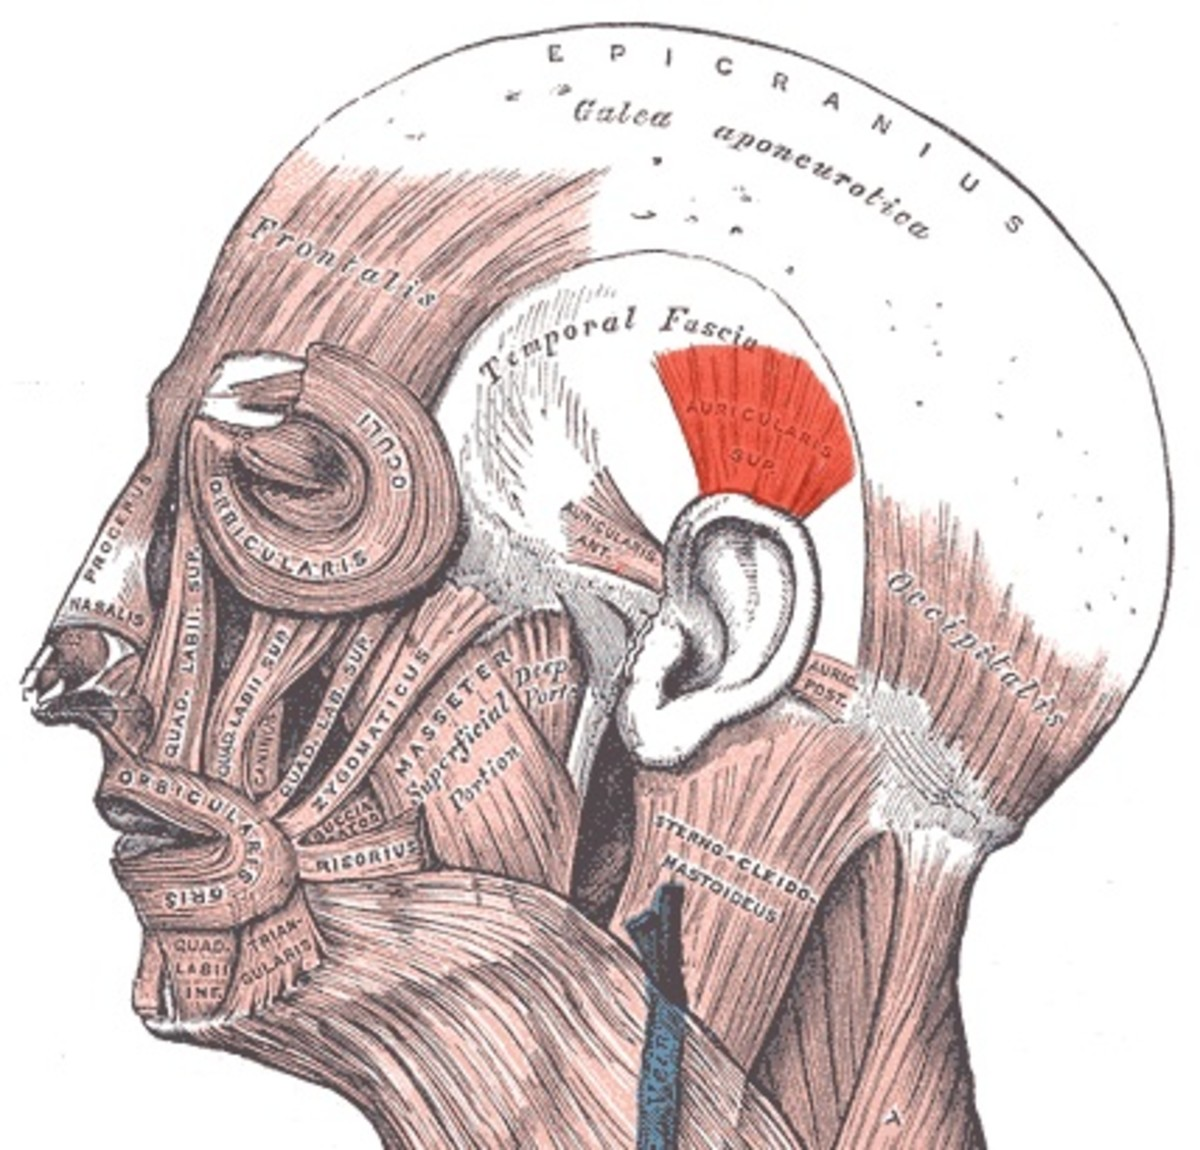 The superior auricular muscle is coloured red in this diagram. The anterior auricular muscle is in front of the ear flap, or auricle, and the posterior auricular muscle is behind it.